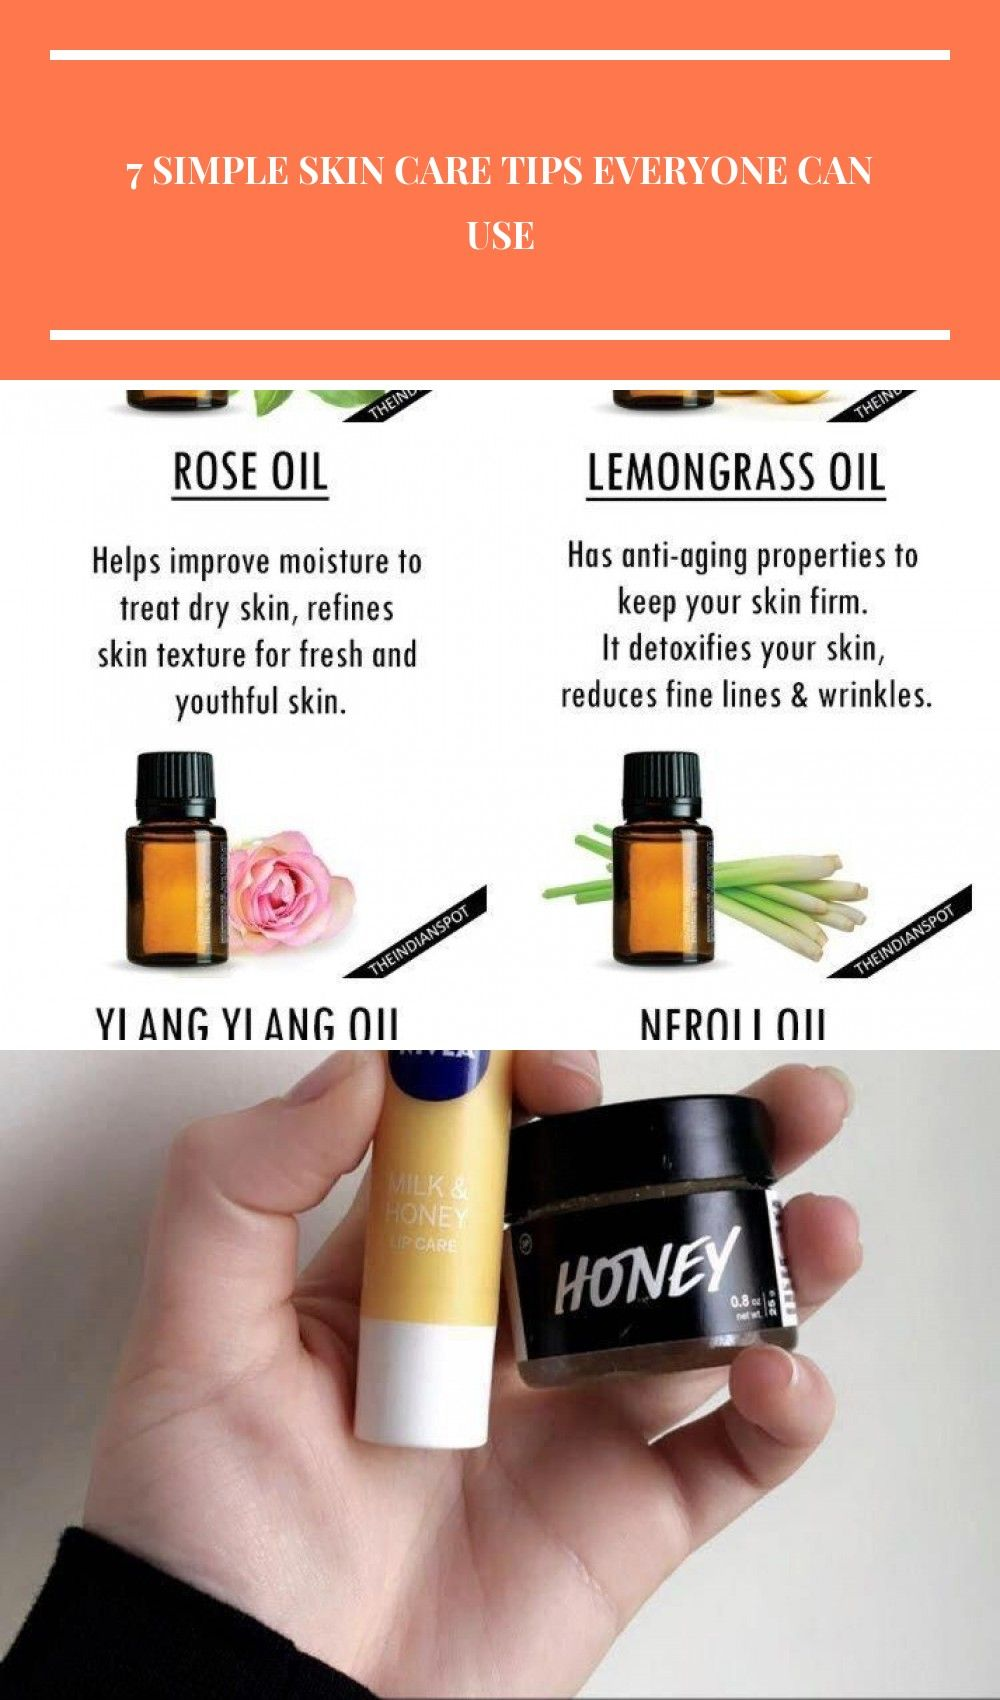 Natural Skin Care Routine. Enjoy your own skin in a